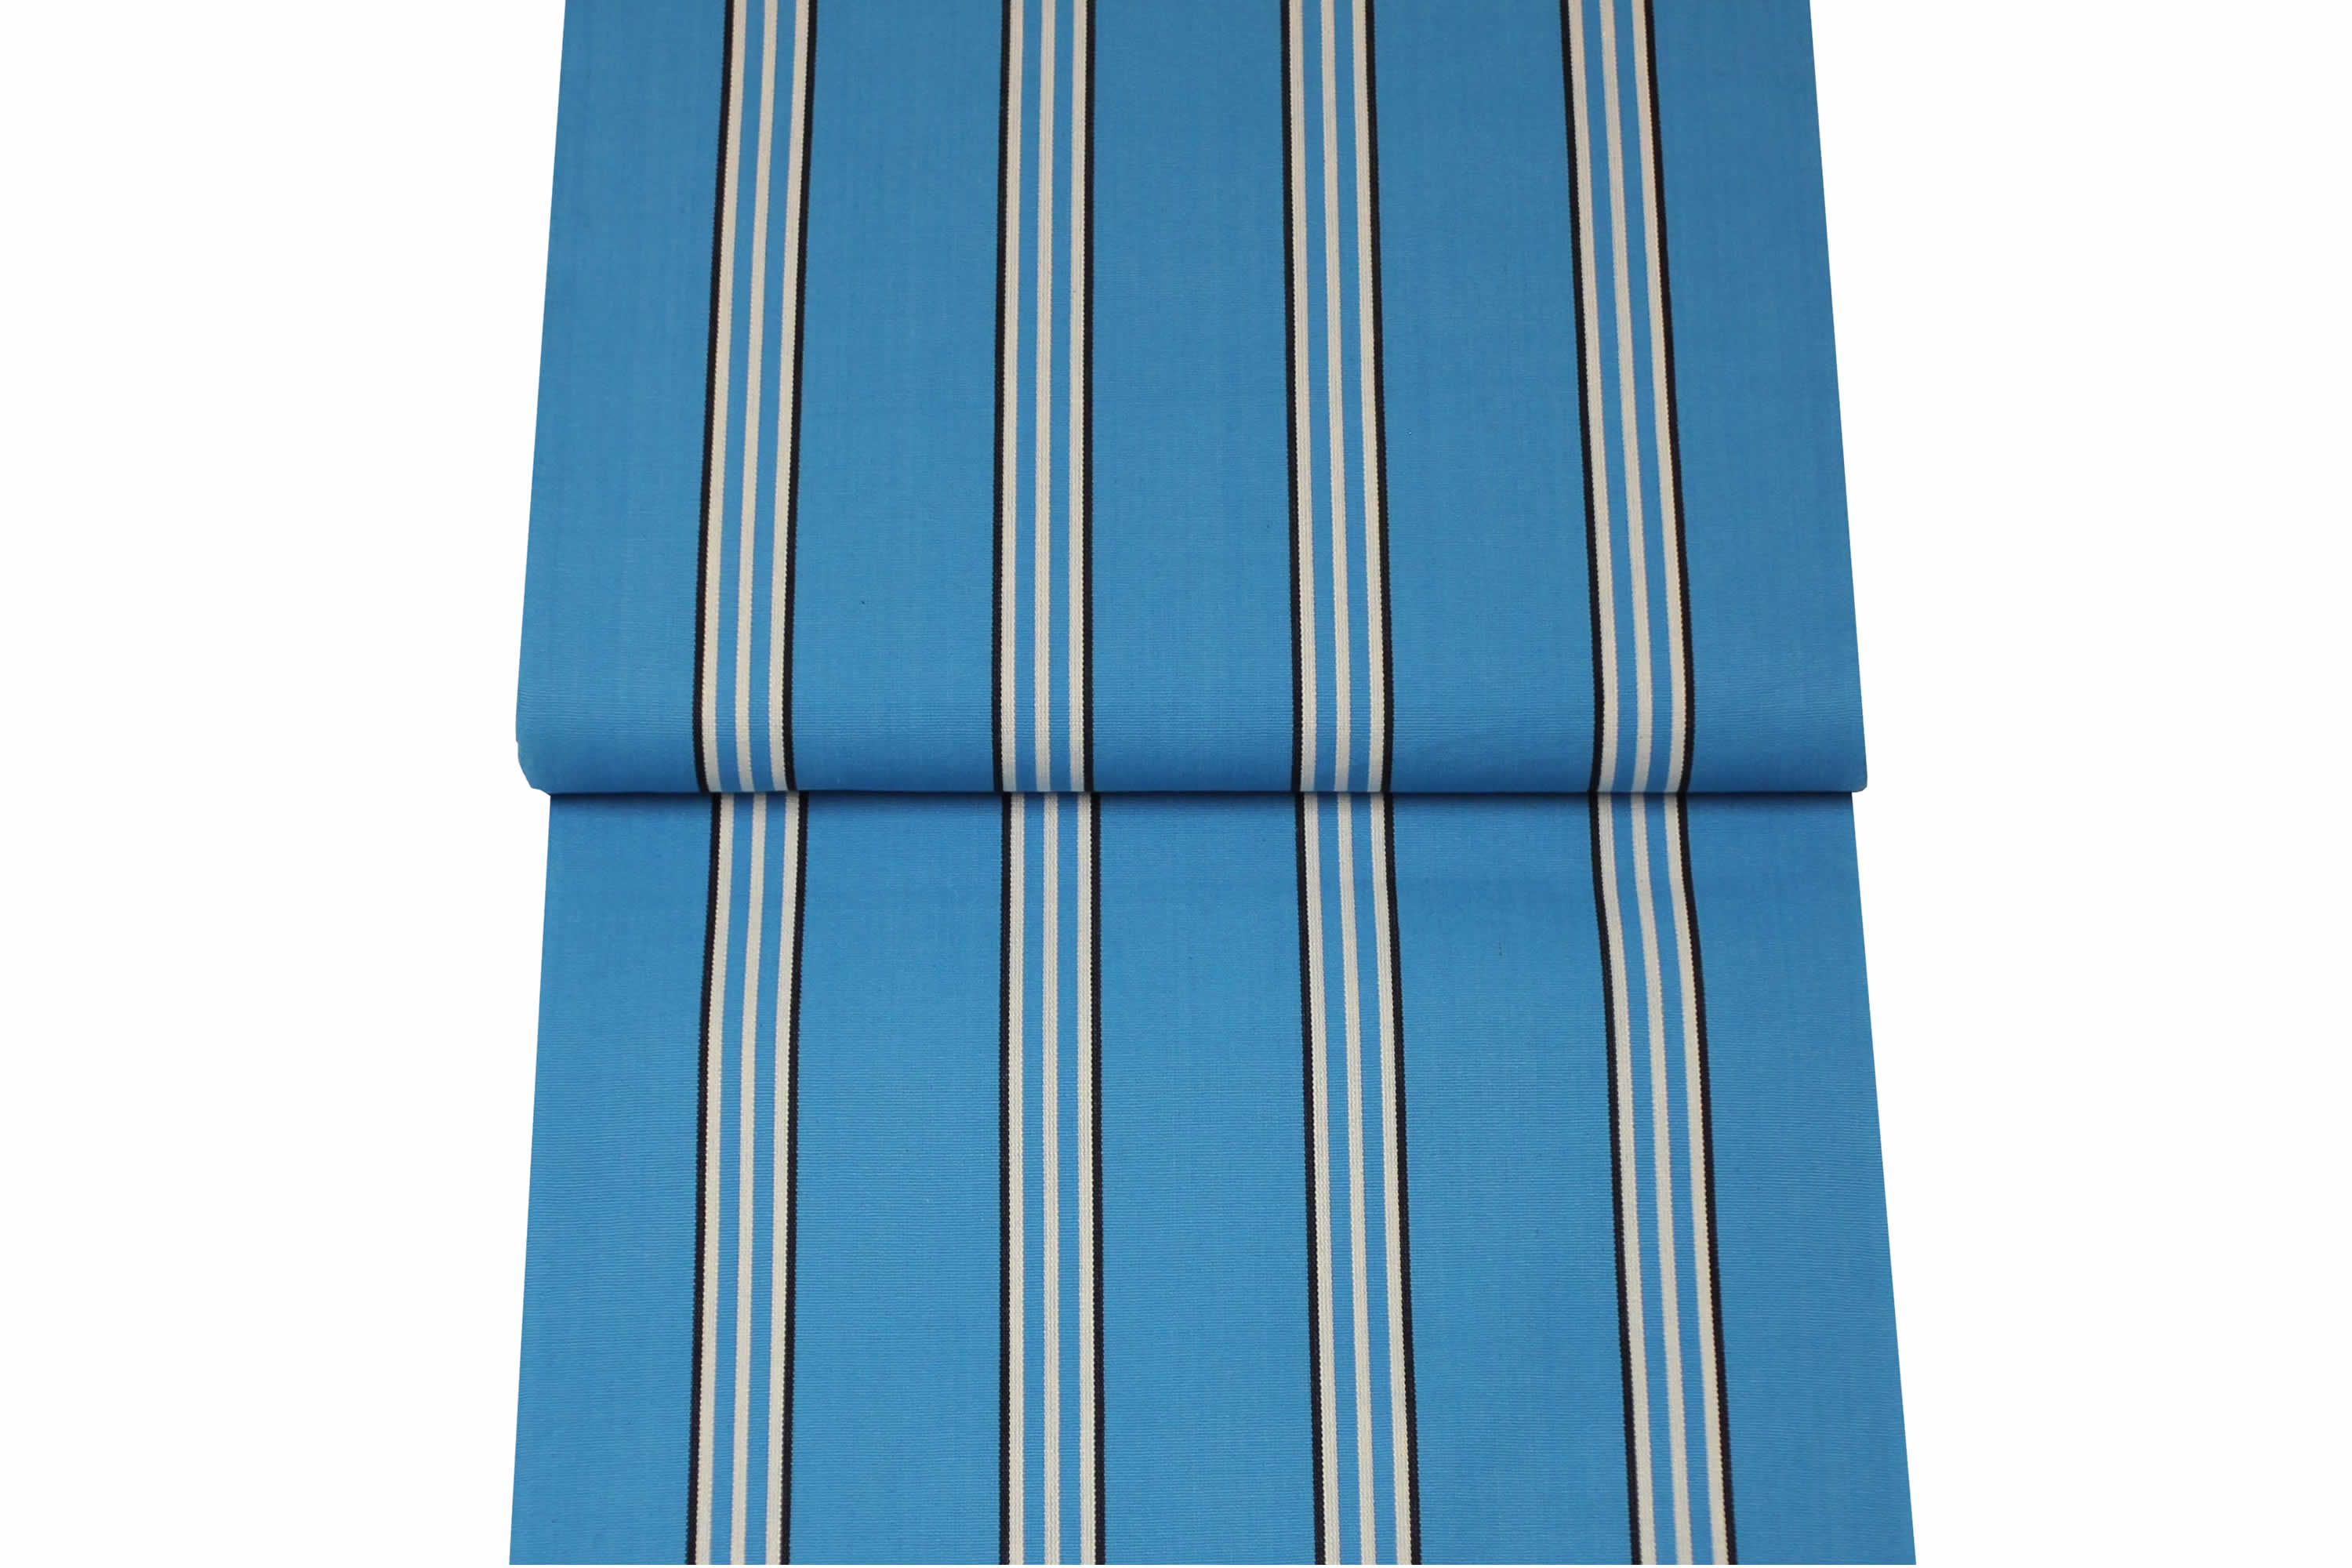 Turquoise Striped Deckchair Canvas Fabric - Thicker Weave turquoise, white, black